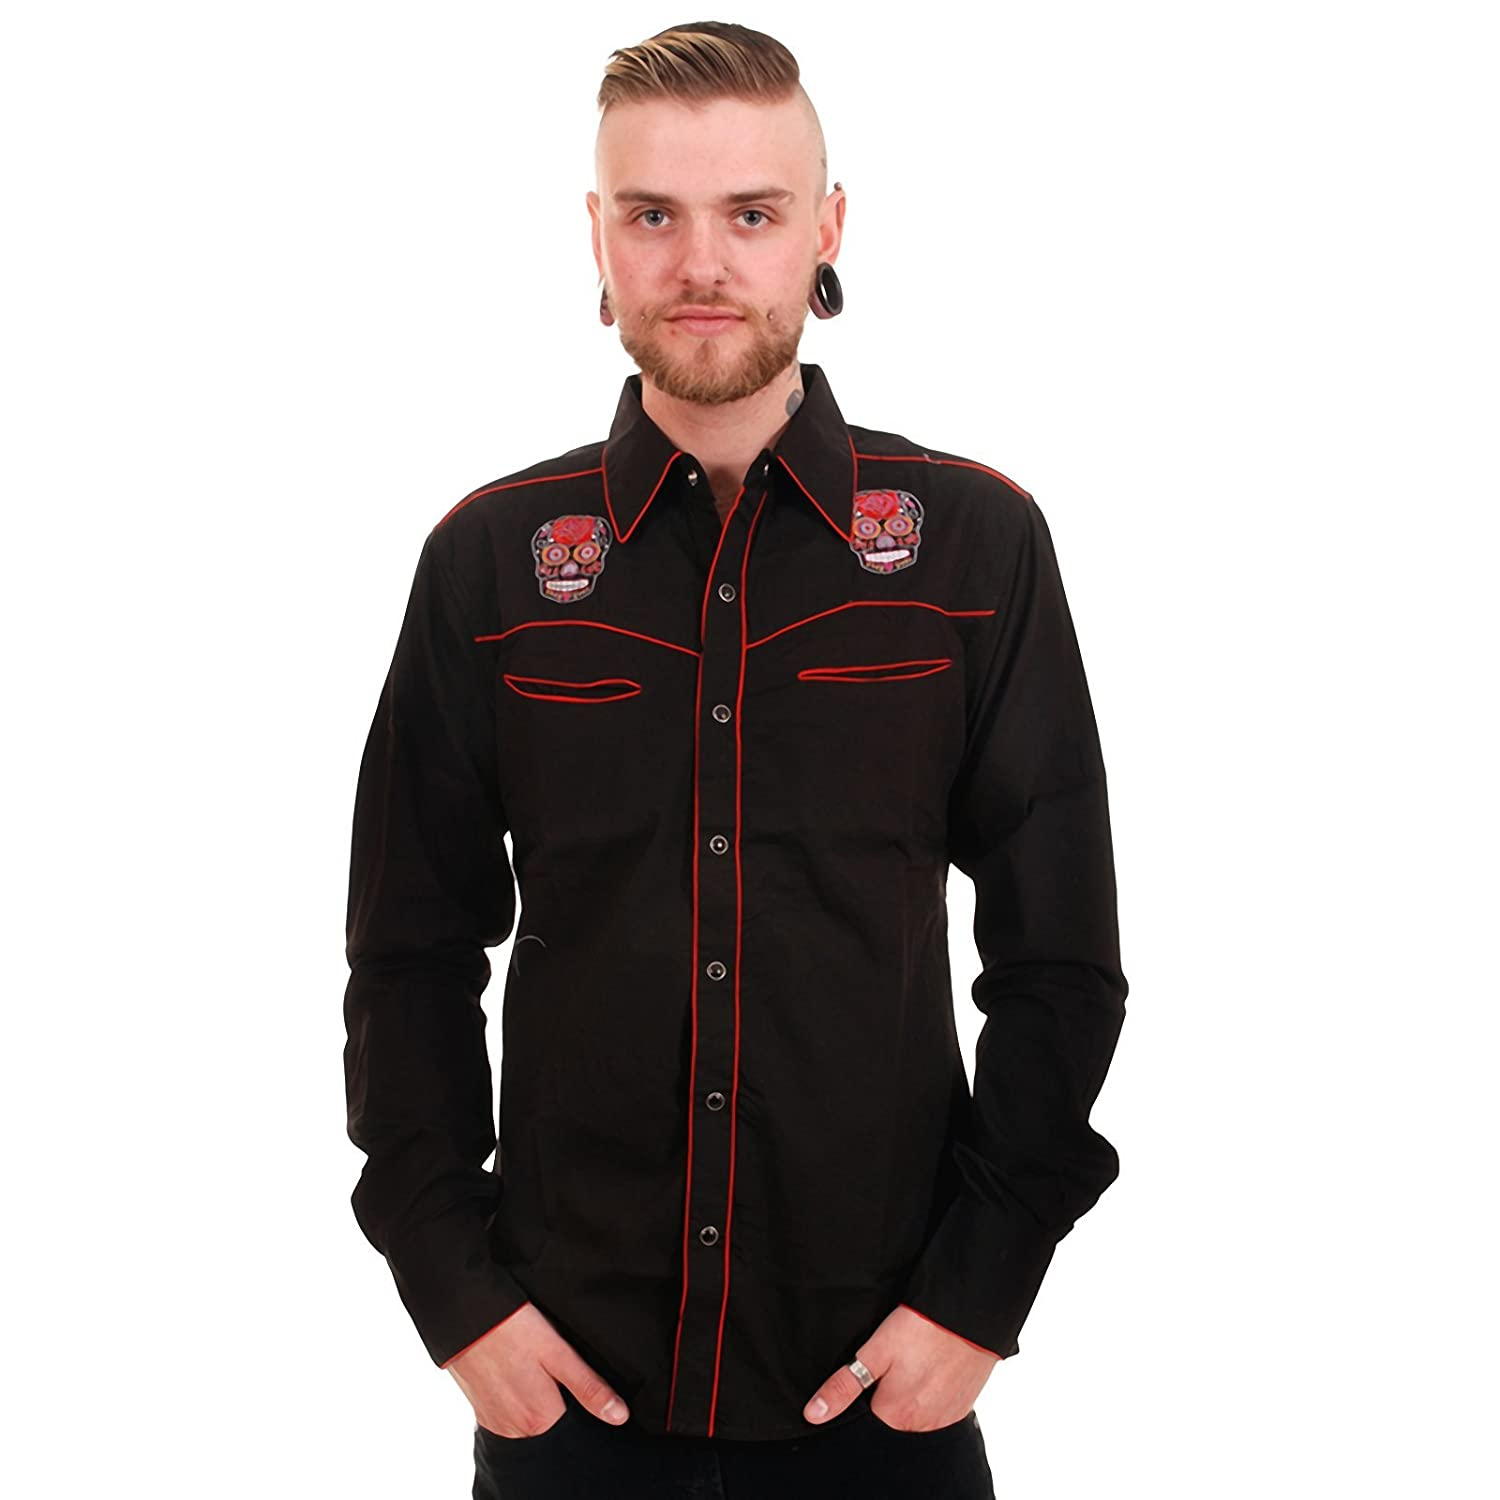 1950s Mens Shirts | Retro Bowling Shirts, Vintage Hawaiian Shirts Run & Fly Mens Western Shirt Embroidered Mexican Sugar Skull Tattoo Dead $44.95 AT vintagedancer.com